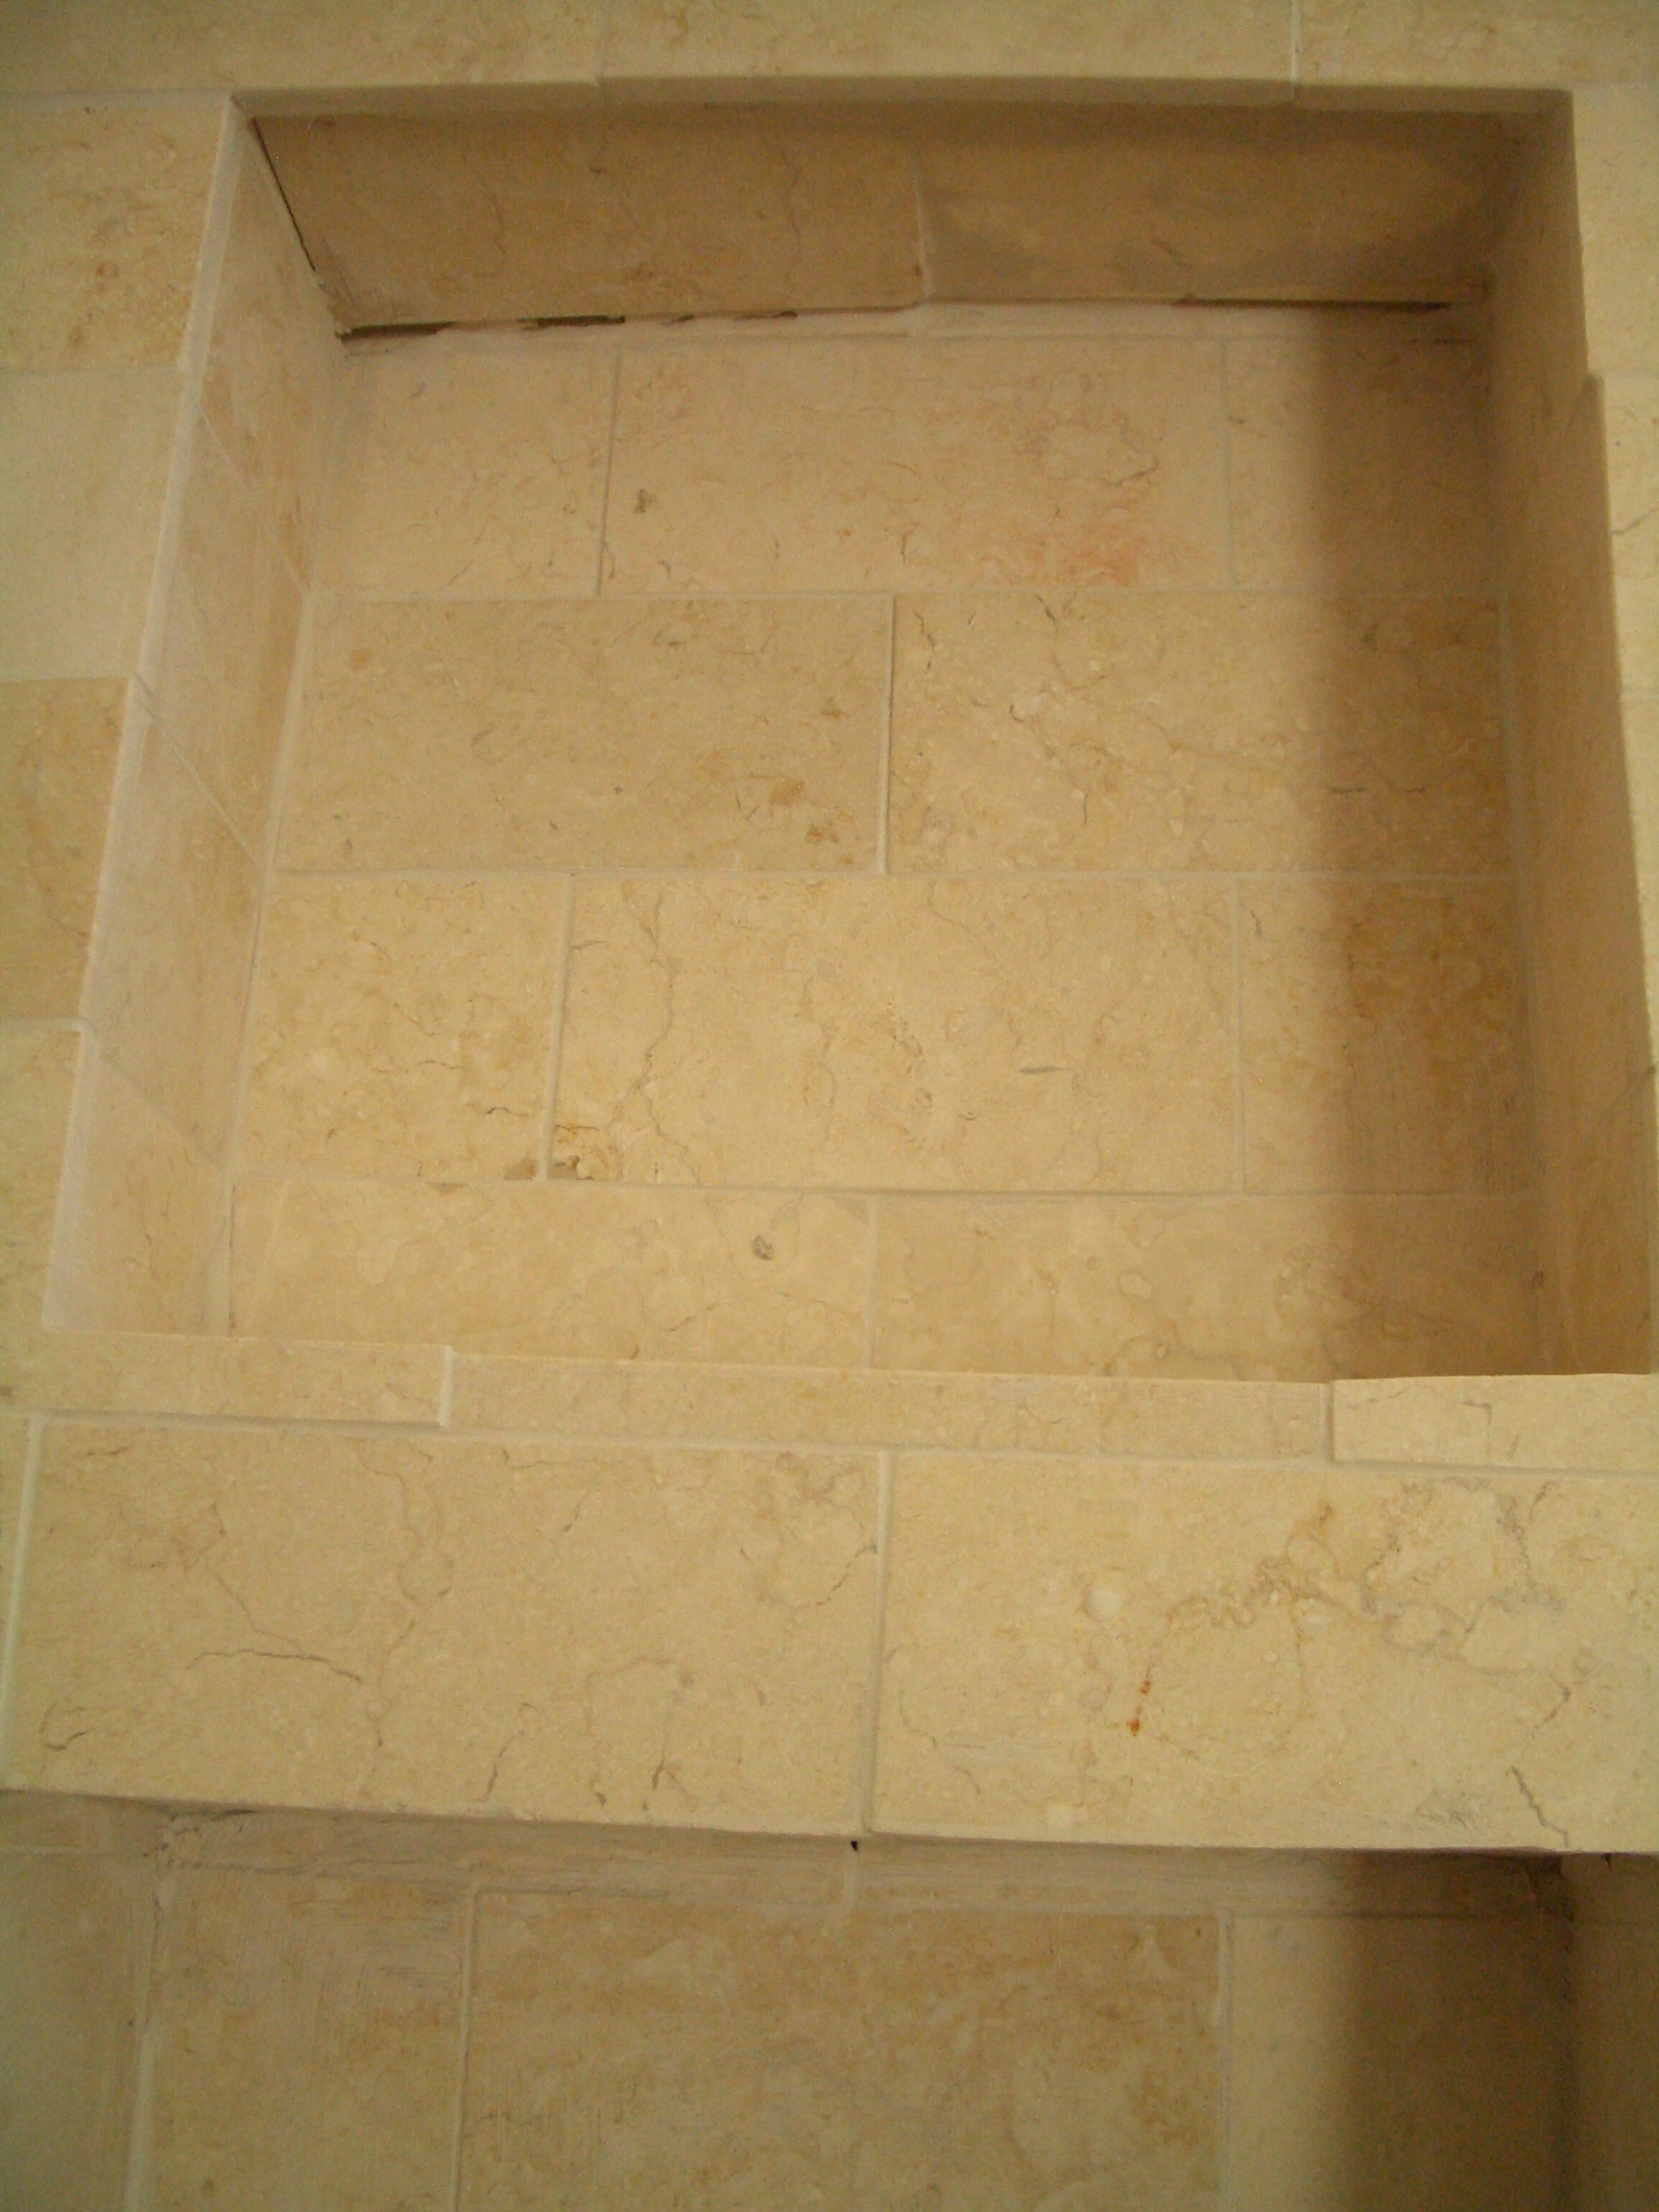 How to build a niche for your shower part 1 incorrectly tiled shower niche dailygadgetfo Choice Image